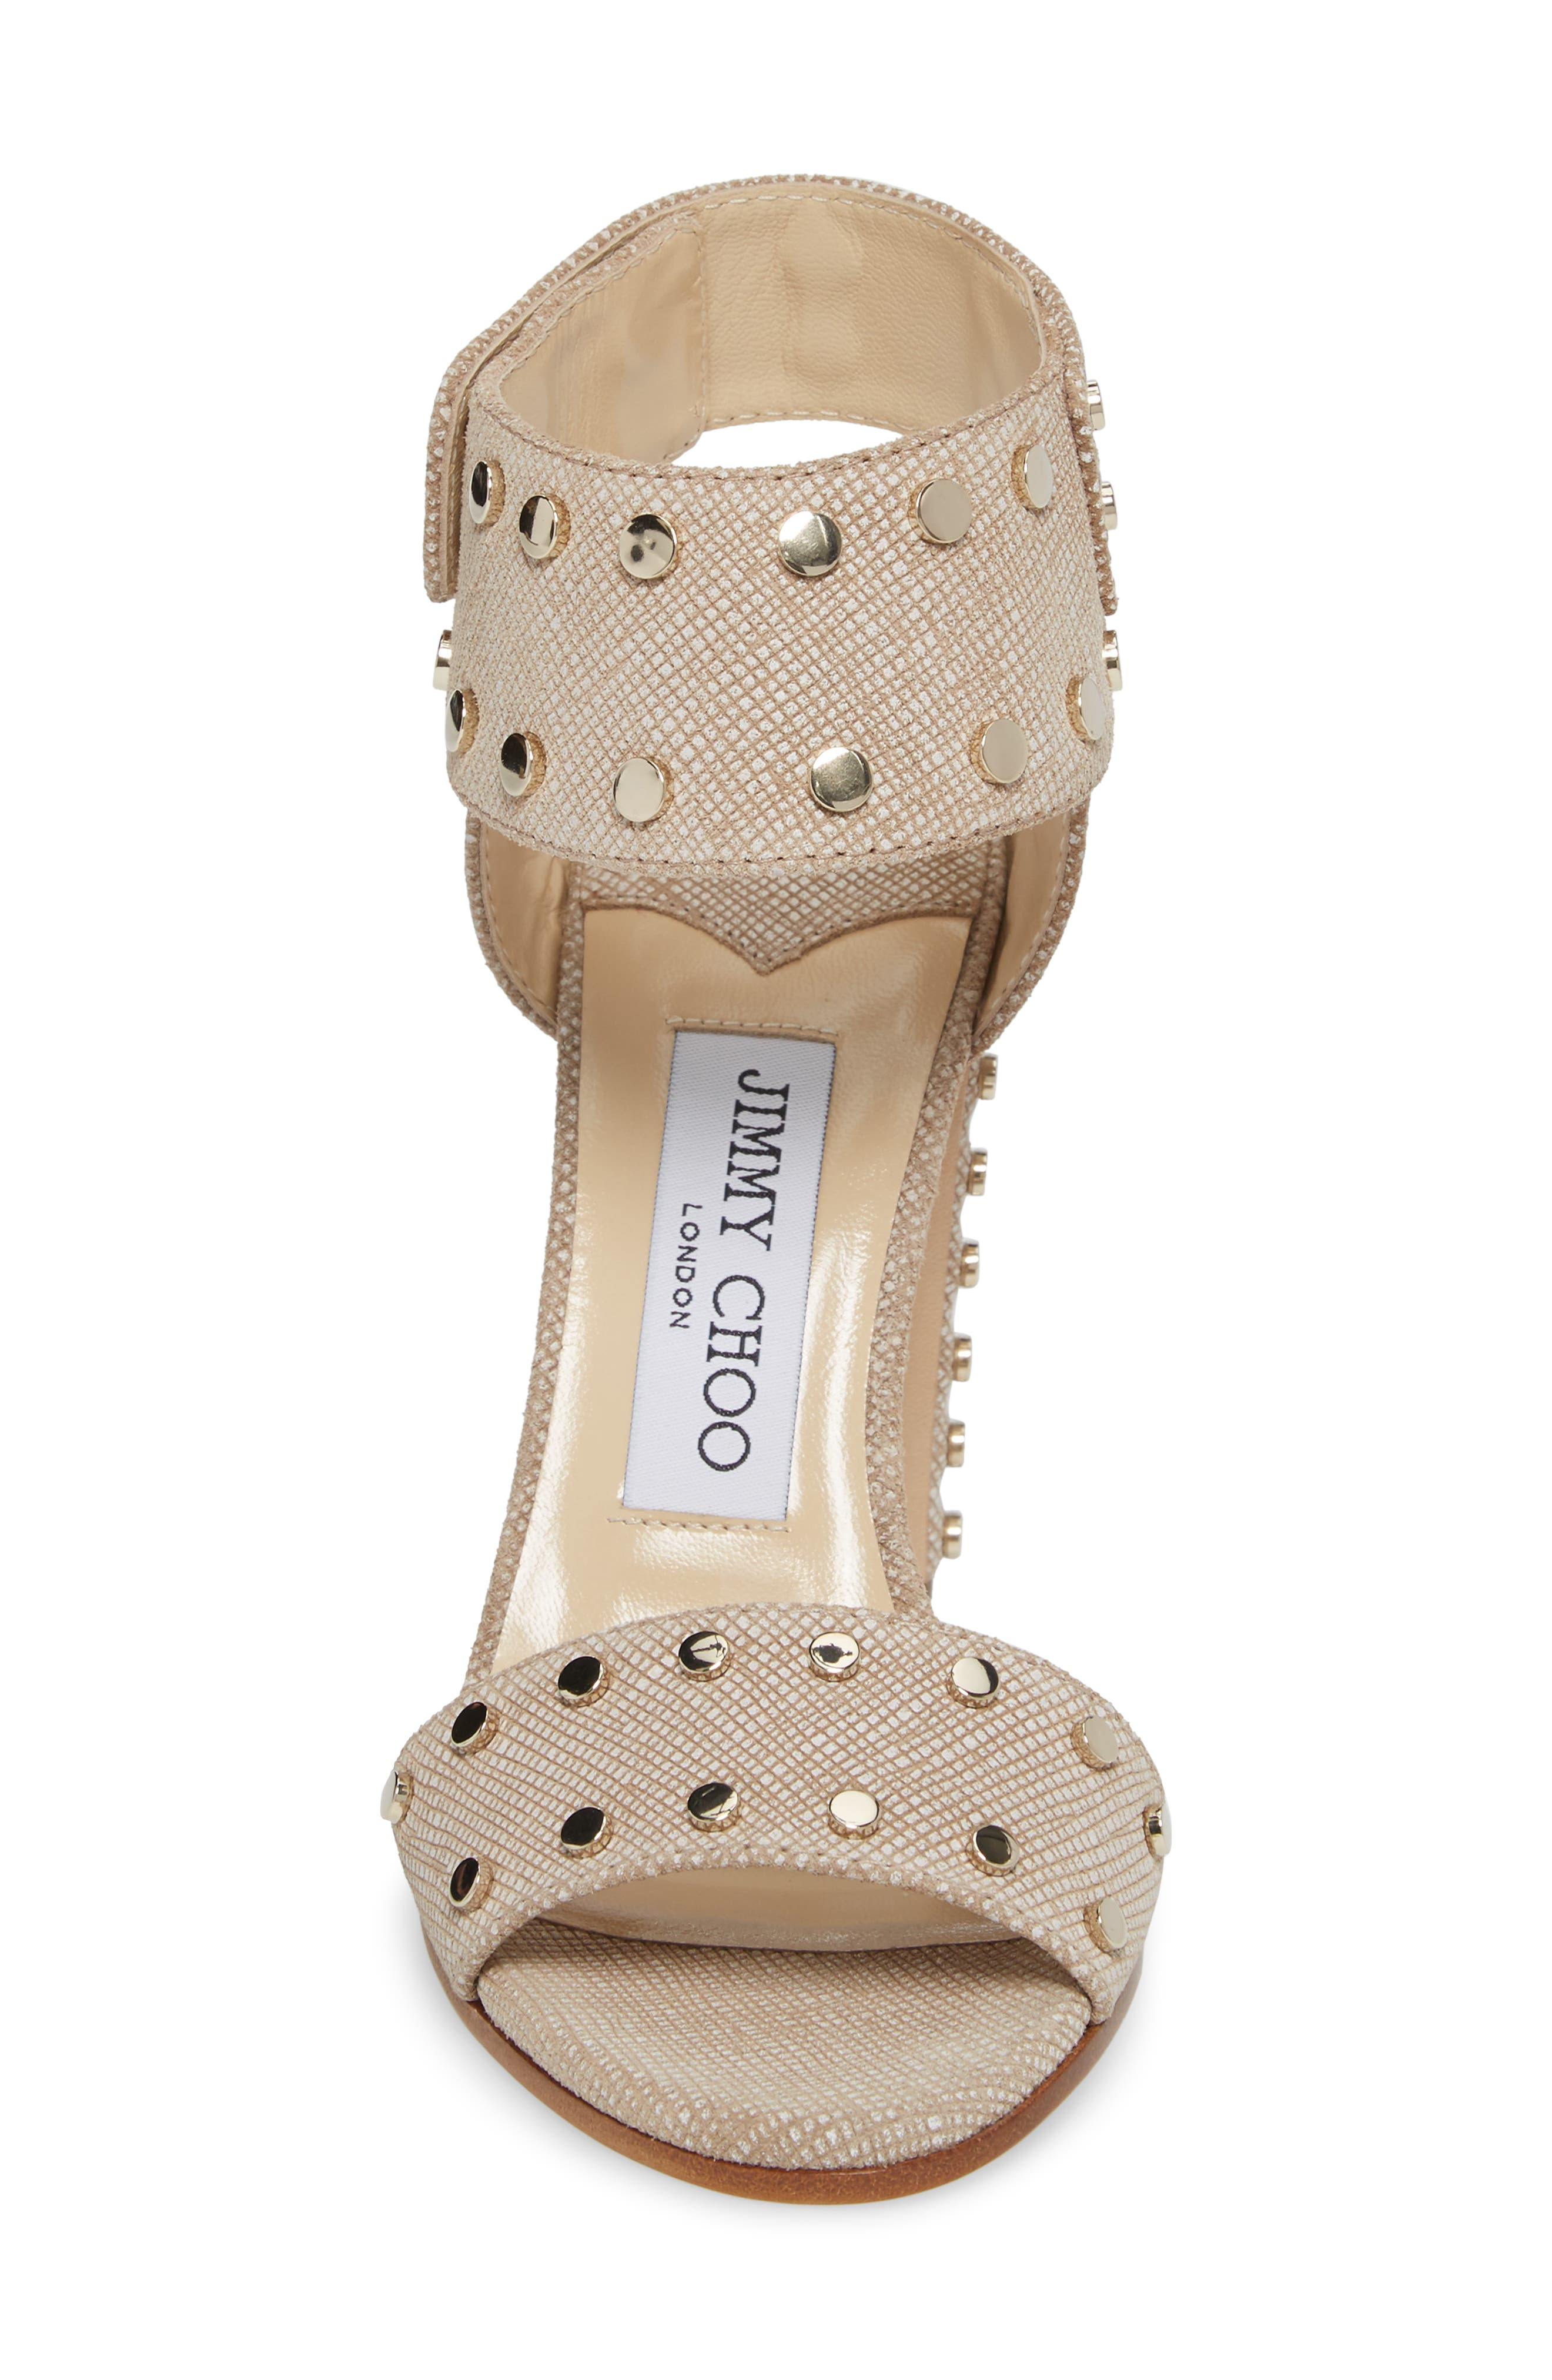 Veto Studded Ankle Cuff Sandal,                             Alternate thumbnail 4, color,                             Chai/ Gold